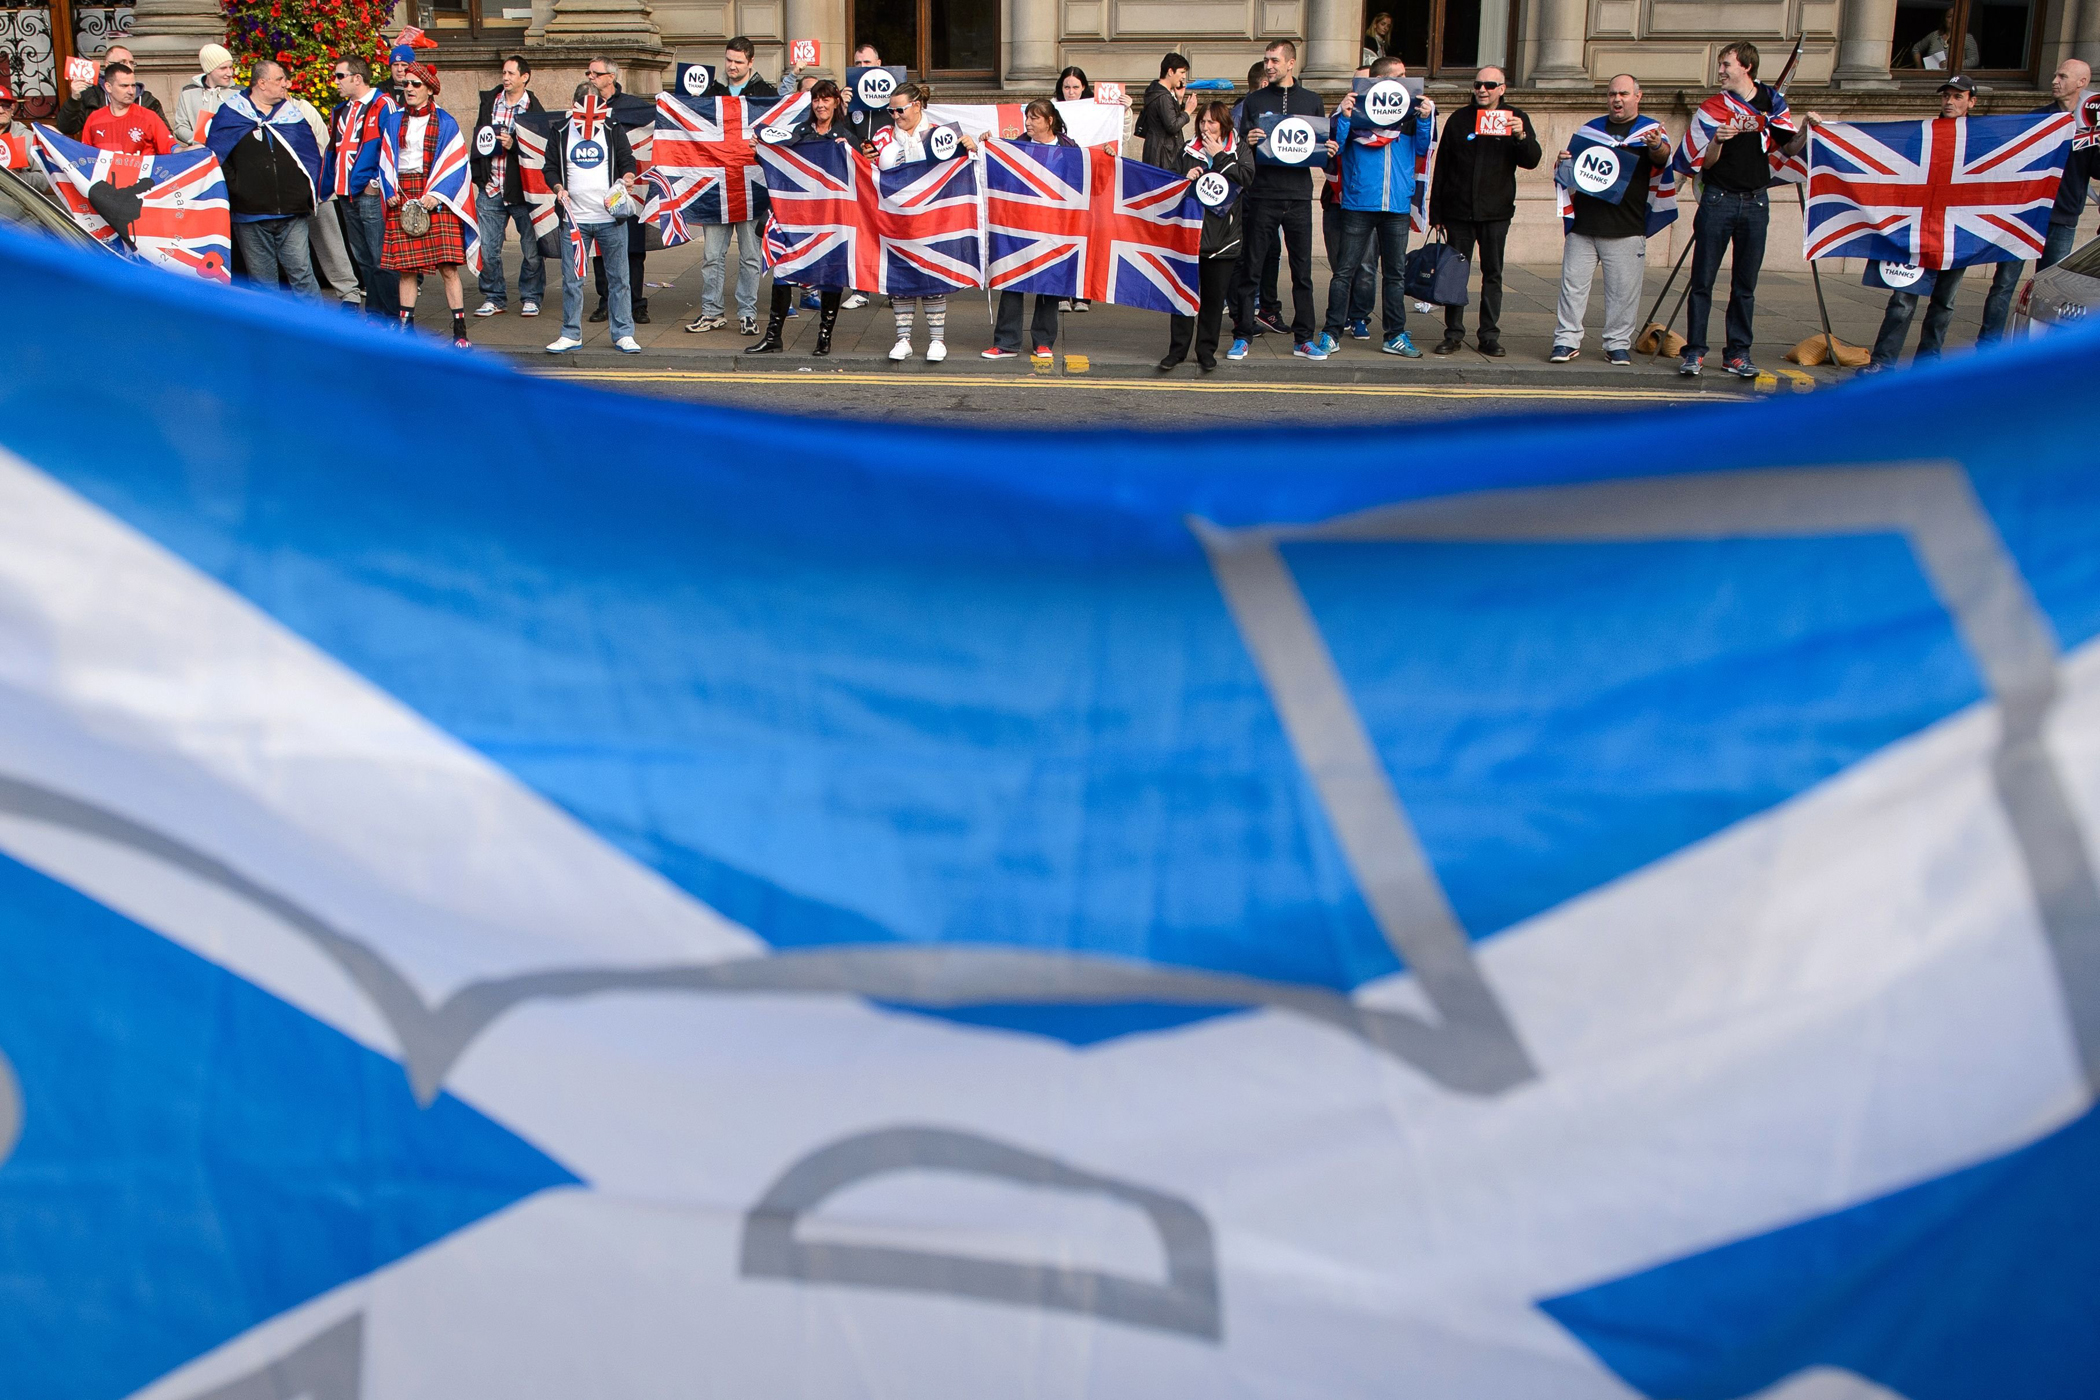 Pro-independence supporters' Scottish flag  seen in front of pro-union activists in Glasgow's George Square, in Scotland, on Sept. 17, 2014, on the eve of Scotland's independence referendum.